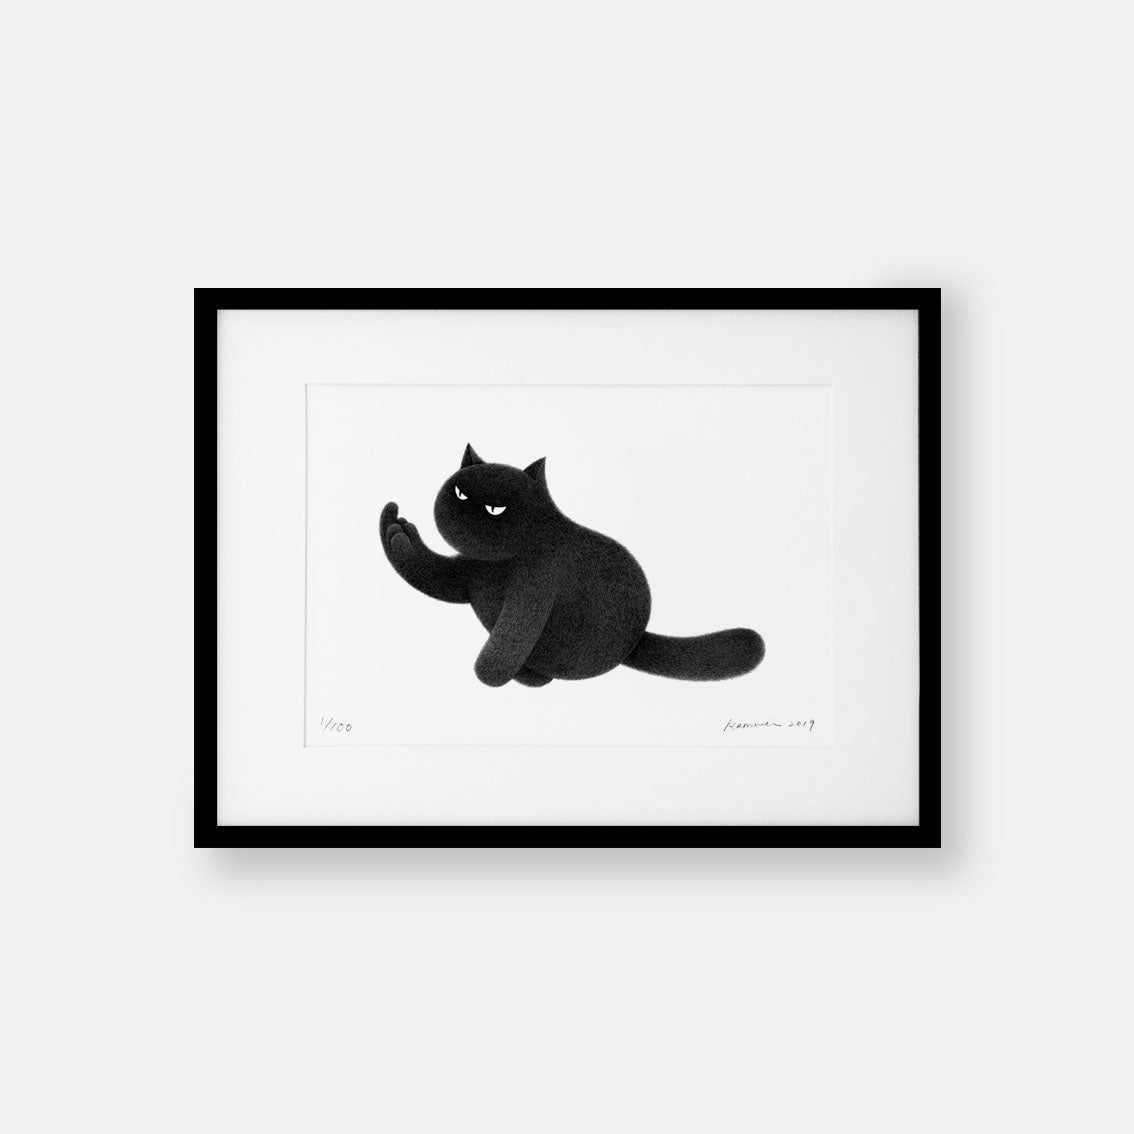 Image of Kitty No.38 – A3 Limited Edition Print